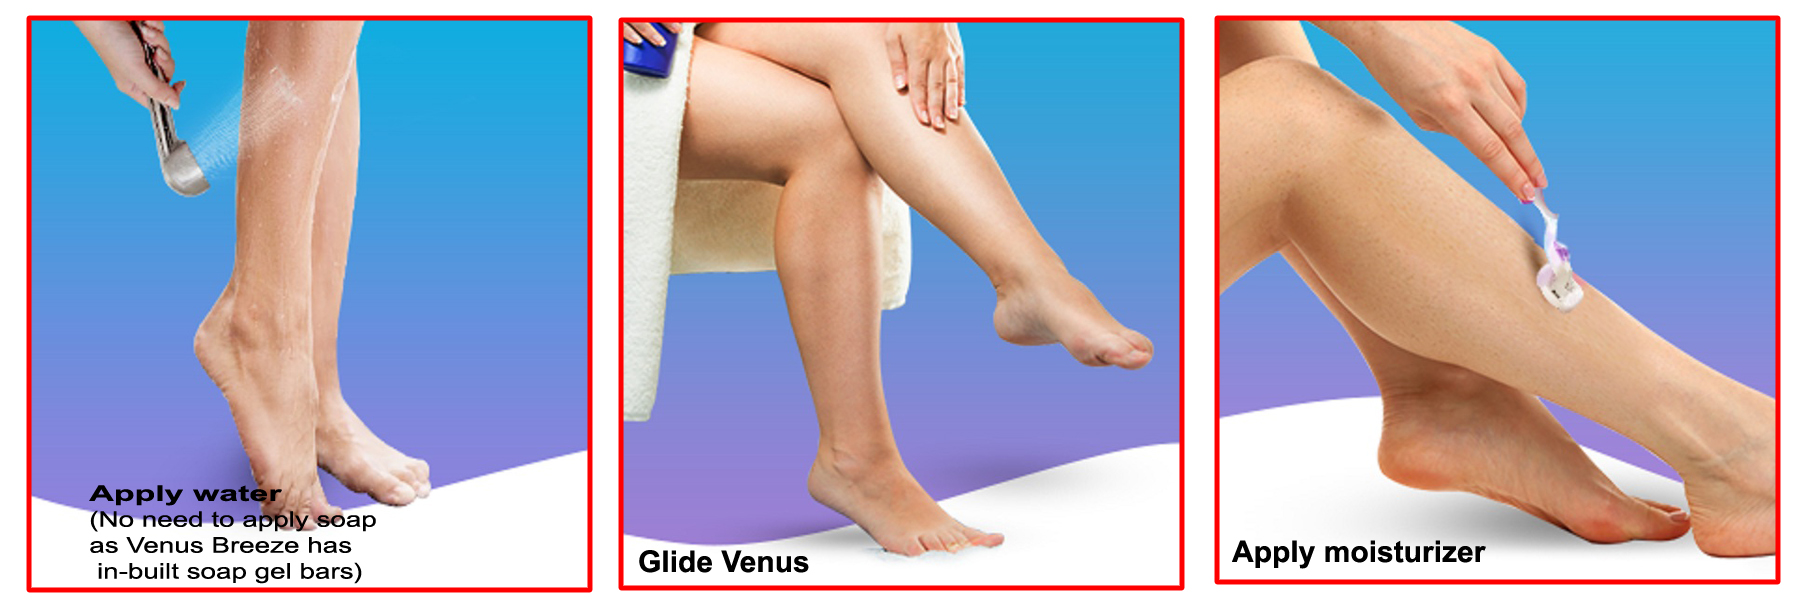 Gillette Venus Breeze Cartridge